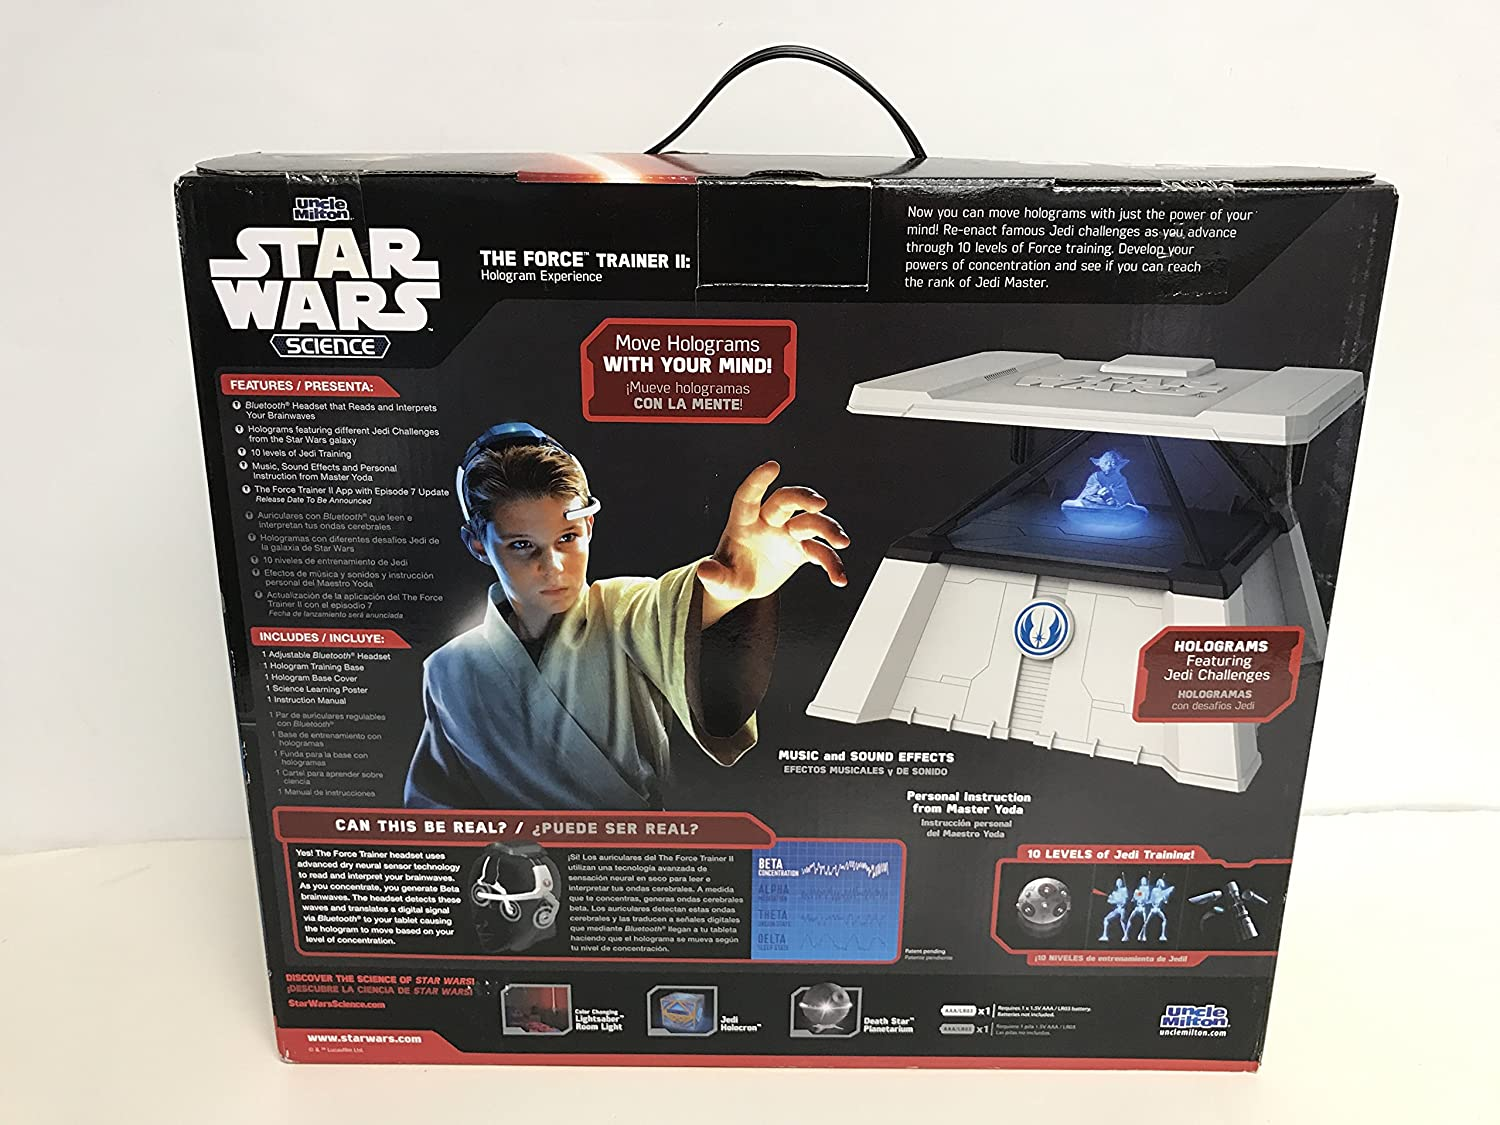 Amazon.com: Force Awakens STAR WARS Science The Force Trainer 2 II ...